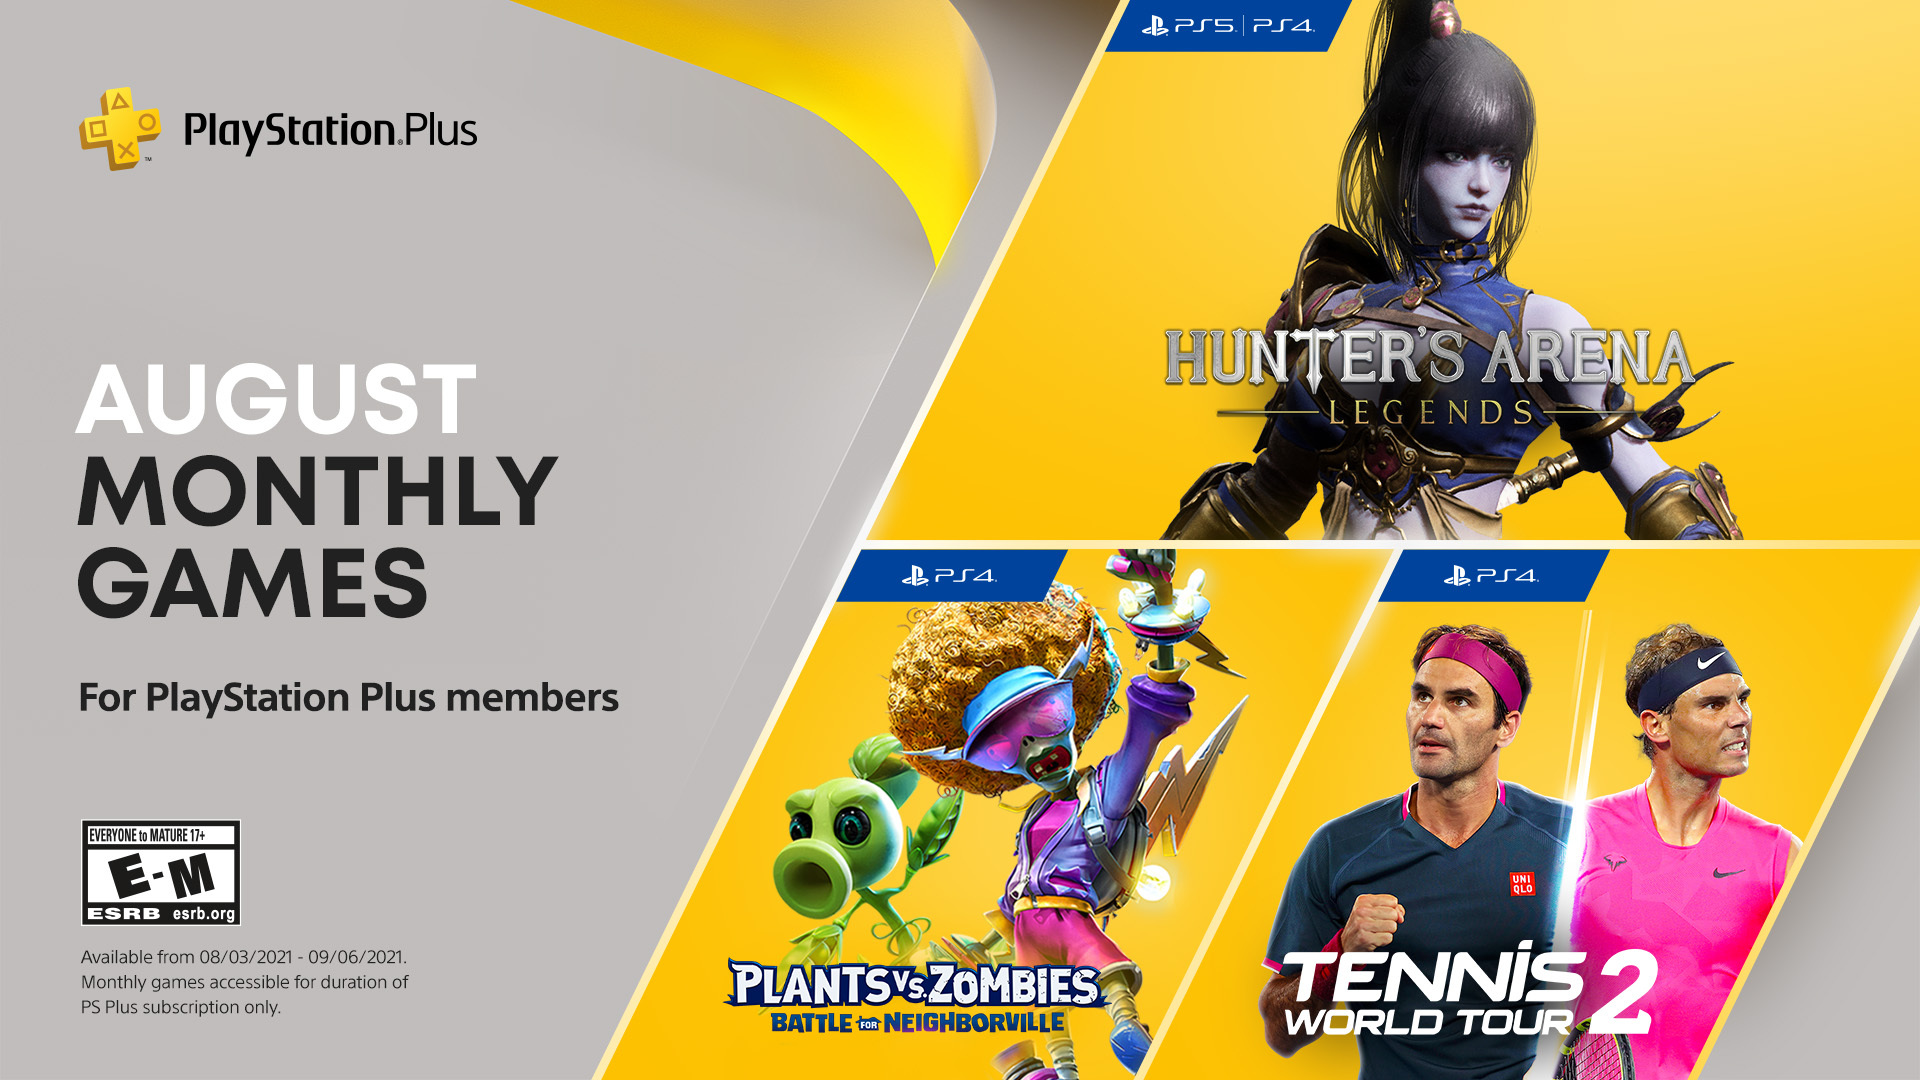 PS Plus Free Games August 2021